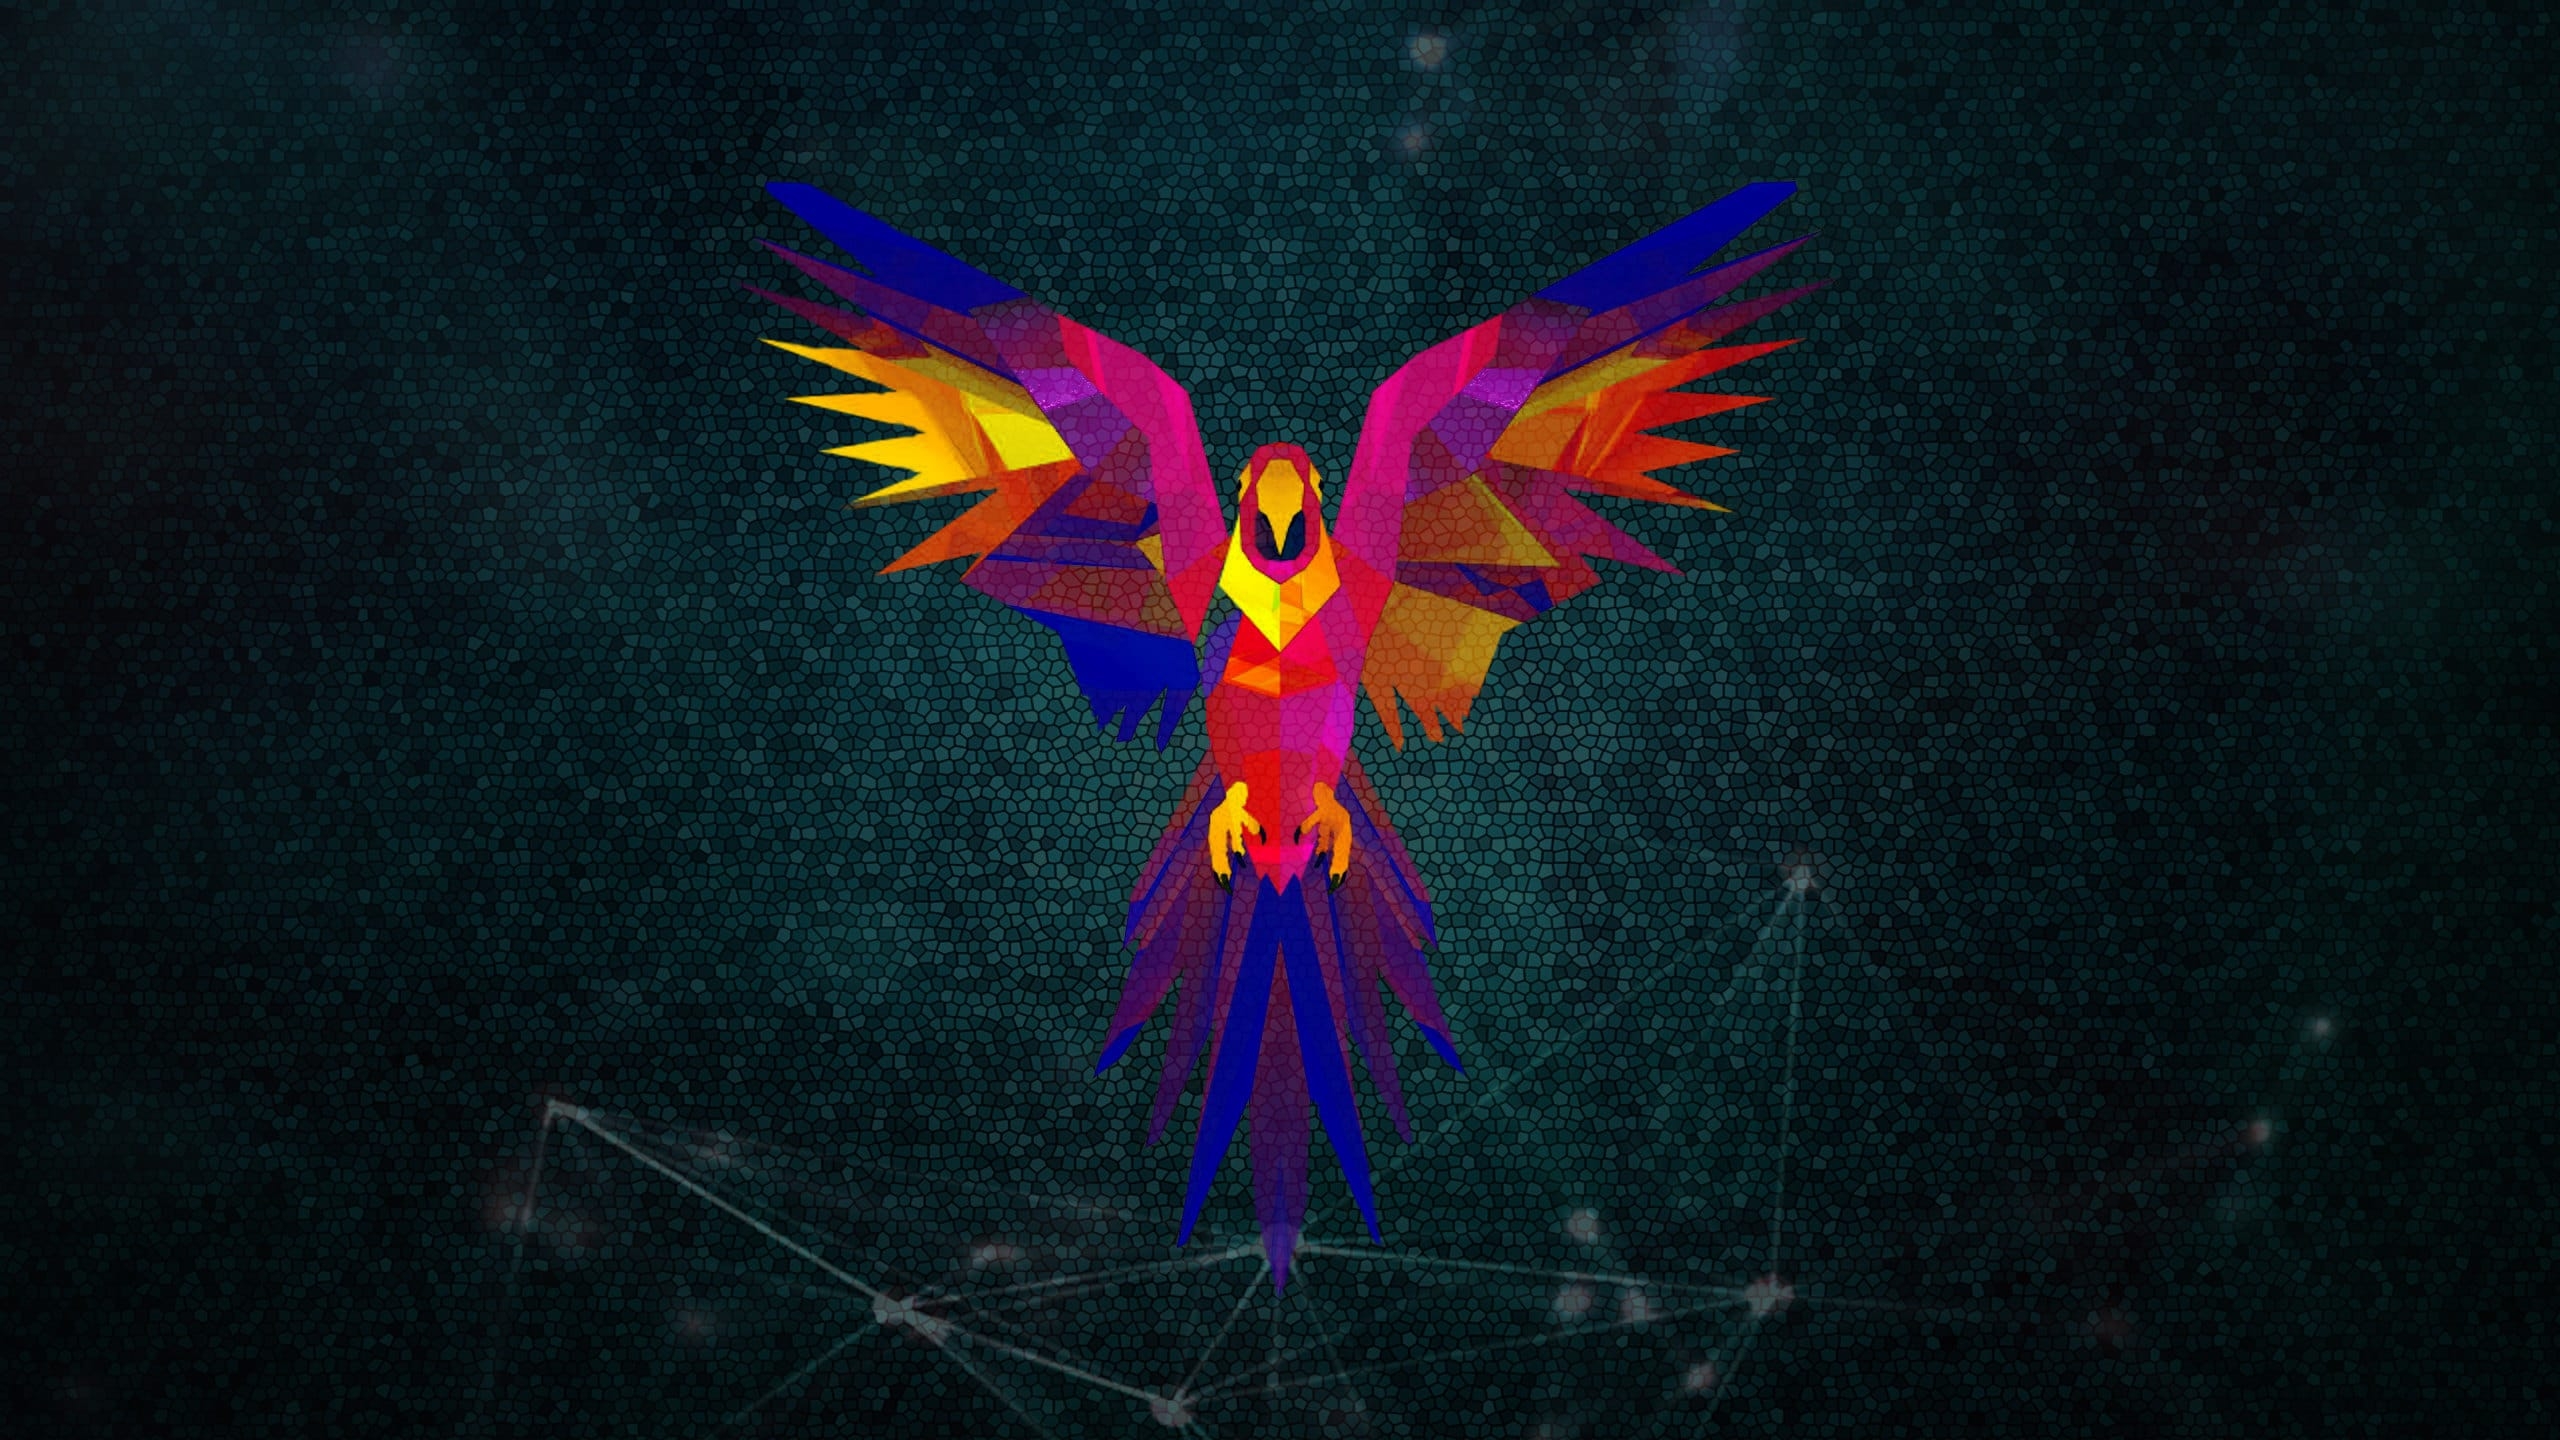 Parrot Security OS Wallpapers